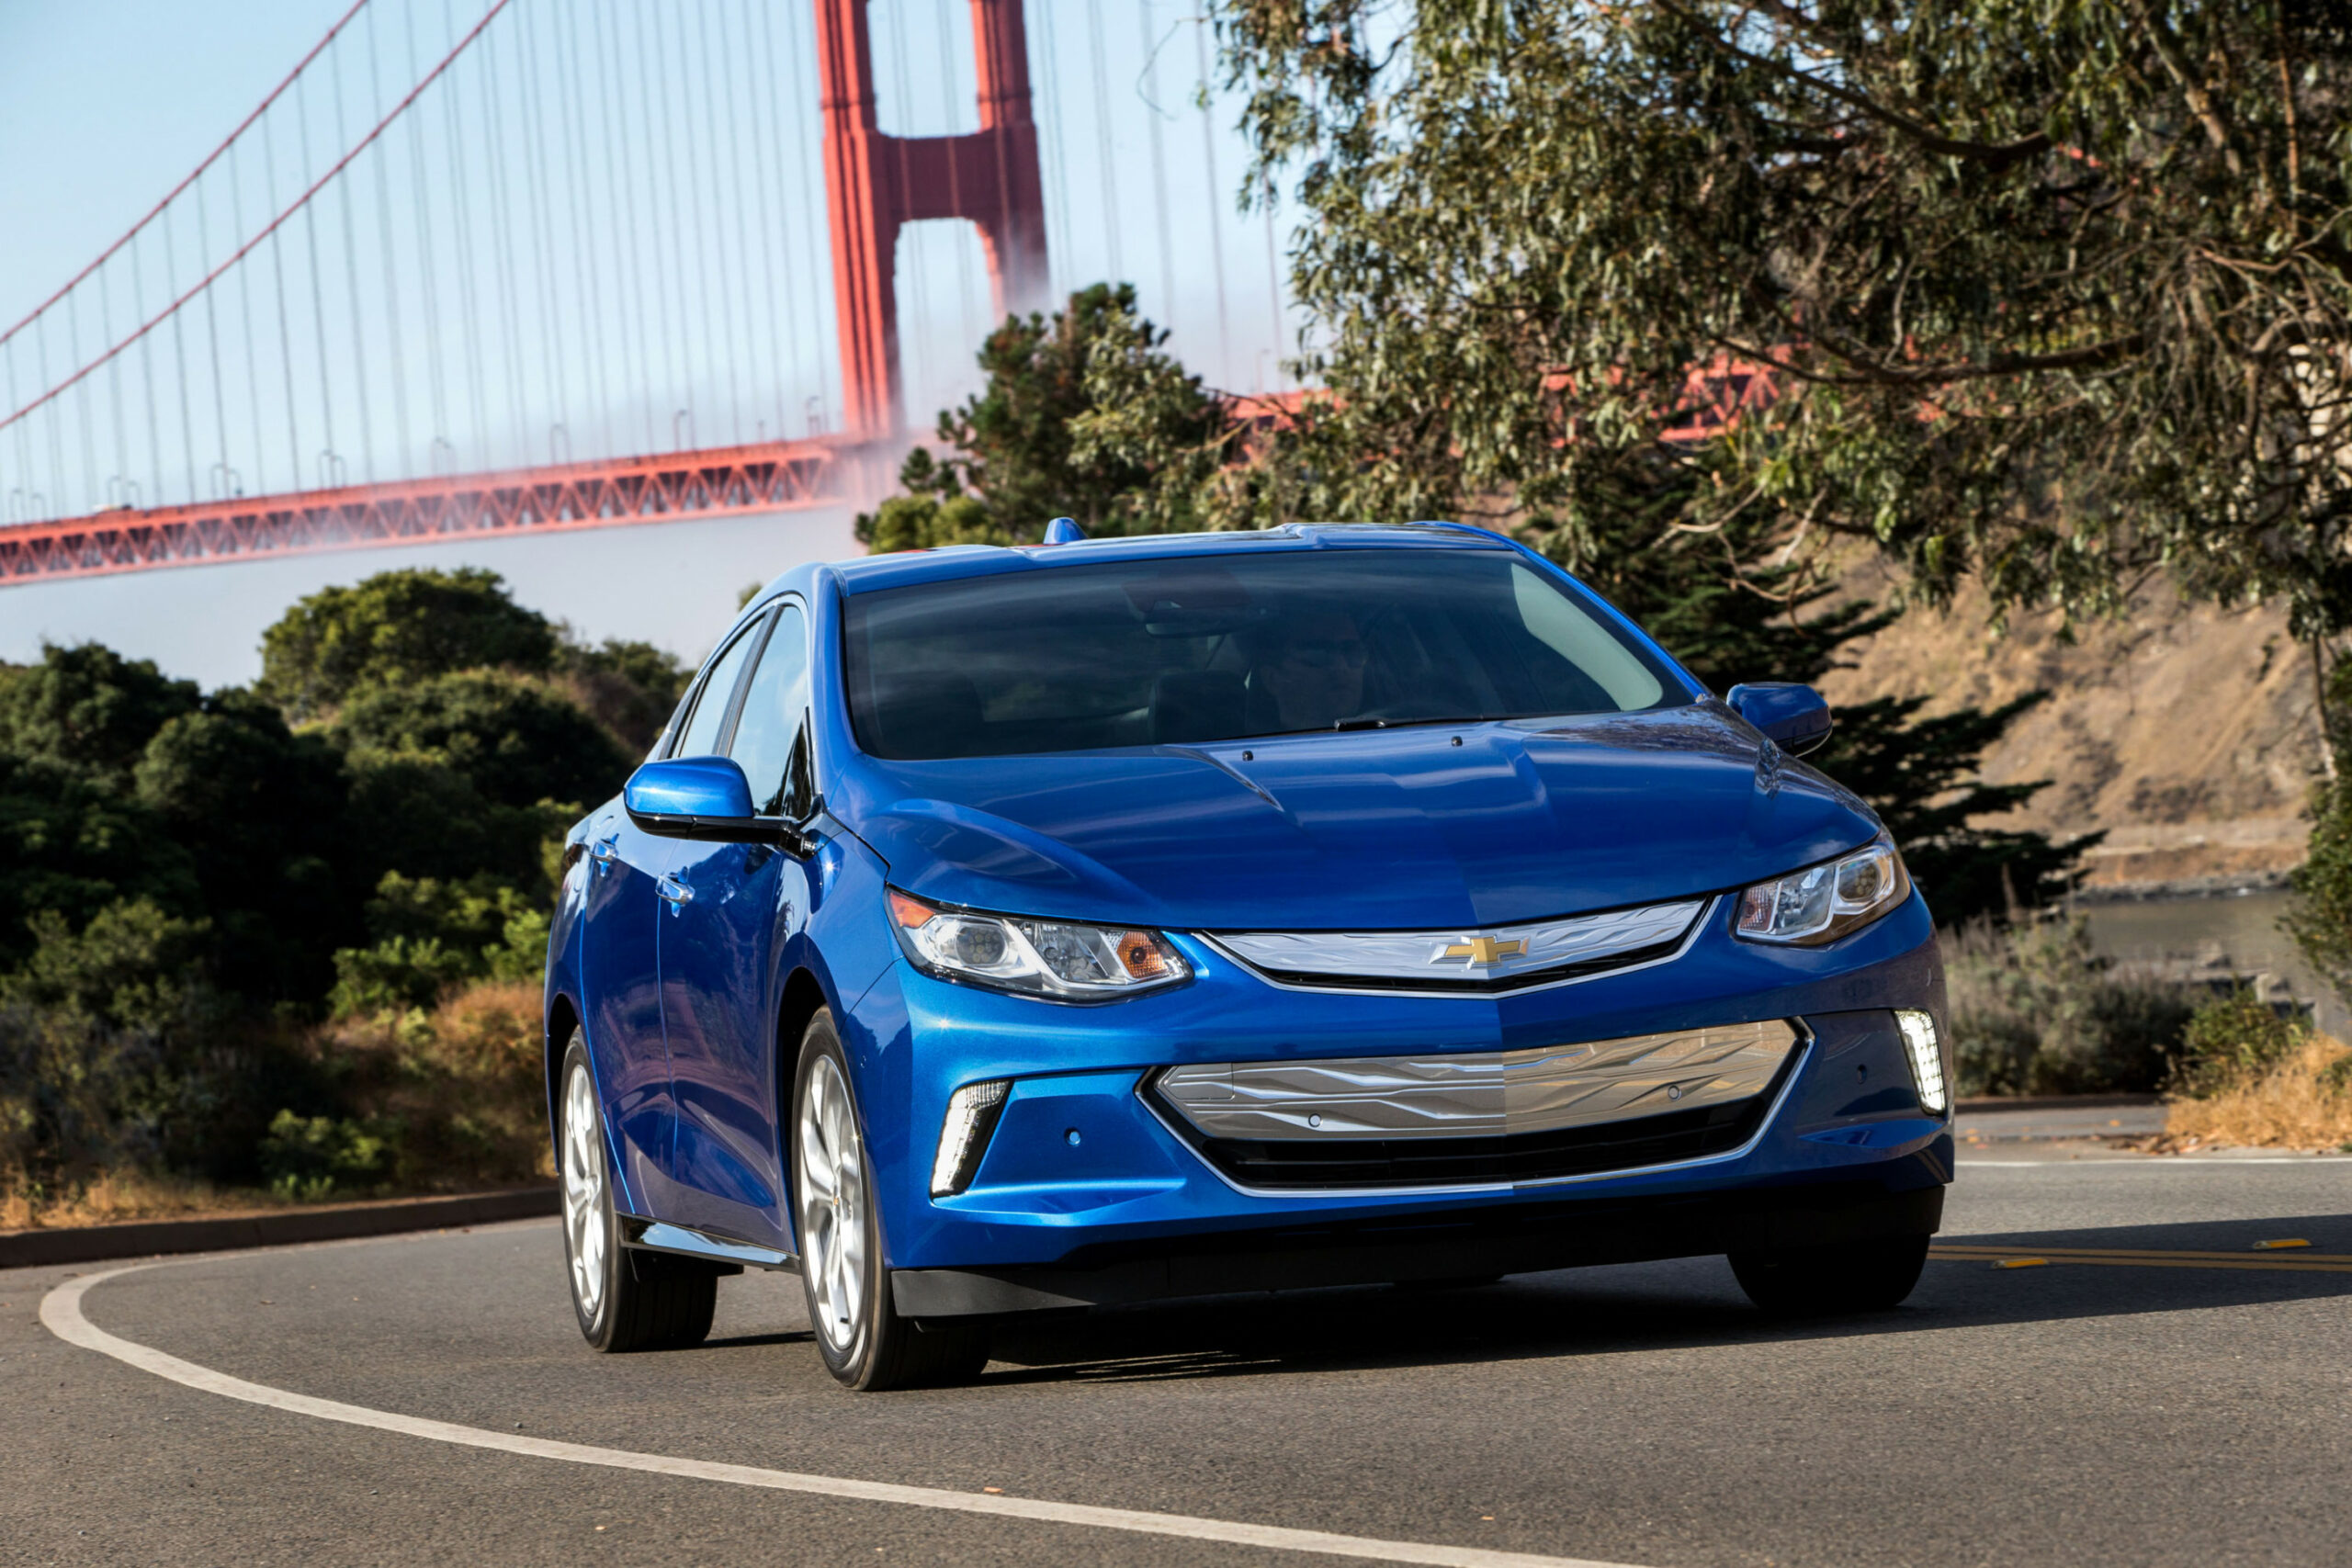 Exterior and Interior 2022 Chevrolet Volt